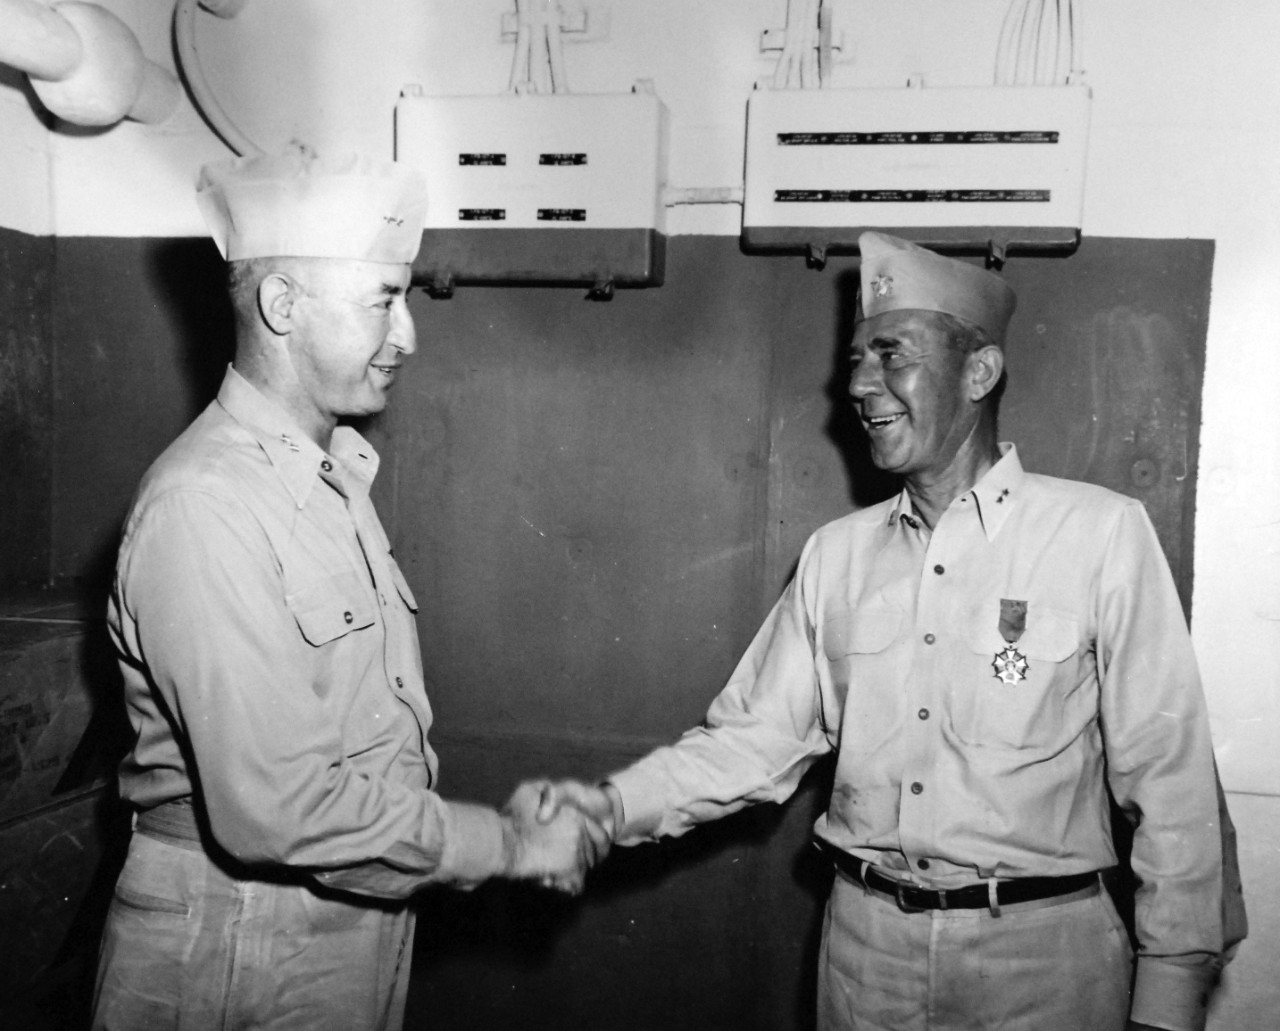 80-G-367404:   Rear Admiral Joseph J. Clark, 1945.    USS Hornet (CV-12).  Admiral Joseph J. Clark presents Legion of Merit to Rear Admiral Lloyd J. Wiltse, CO Cruiser-Division 10 (part of Task Force 58.1), May 3, 1945.   Official U.S. Navy Photograph, now in the collections of the National Archives.